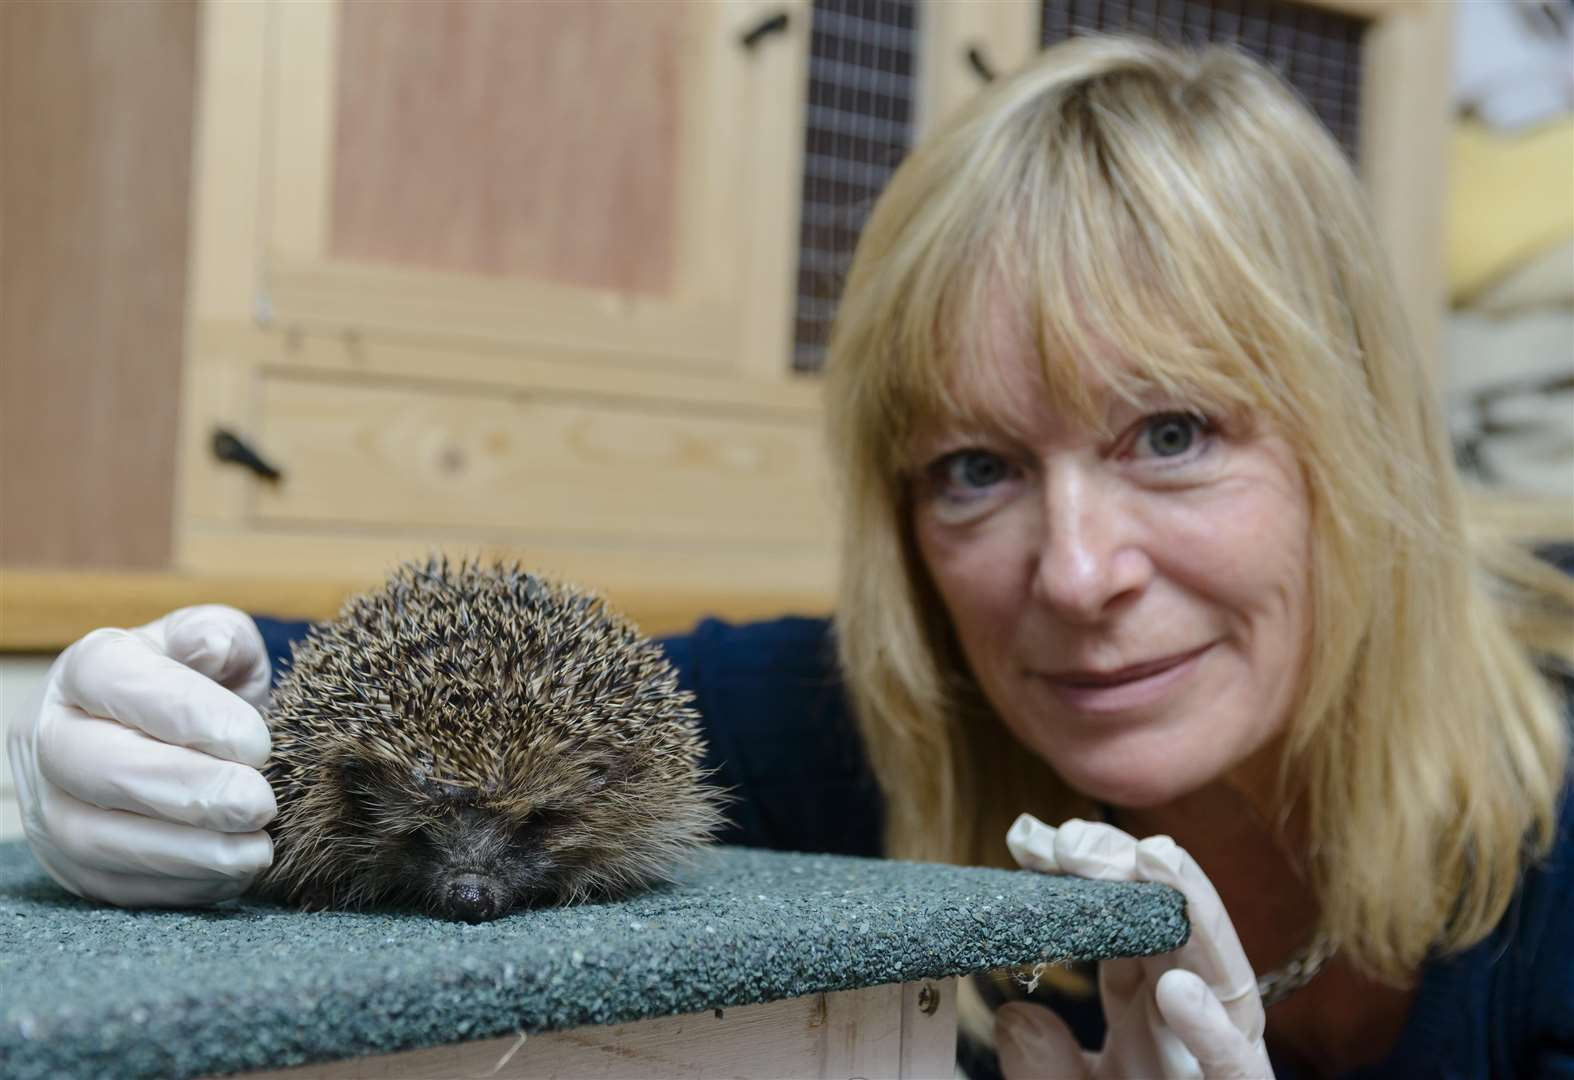 Woman's mission to help baby hedgehogs